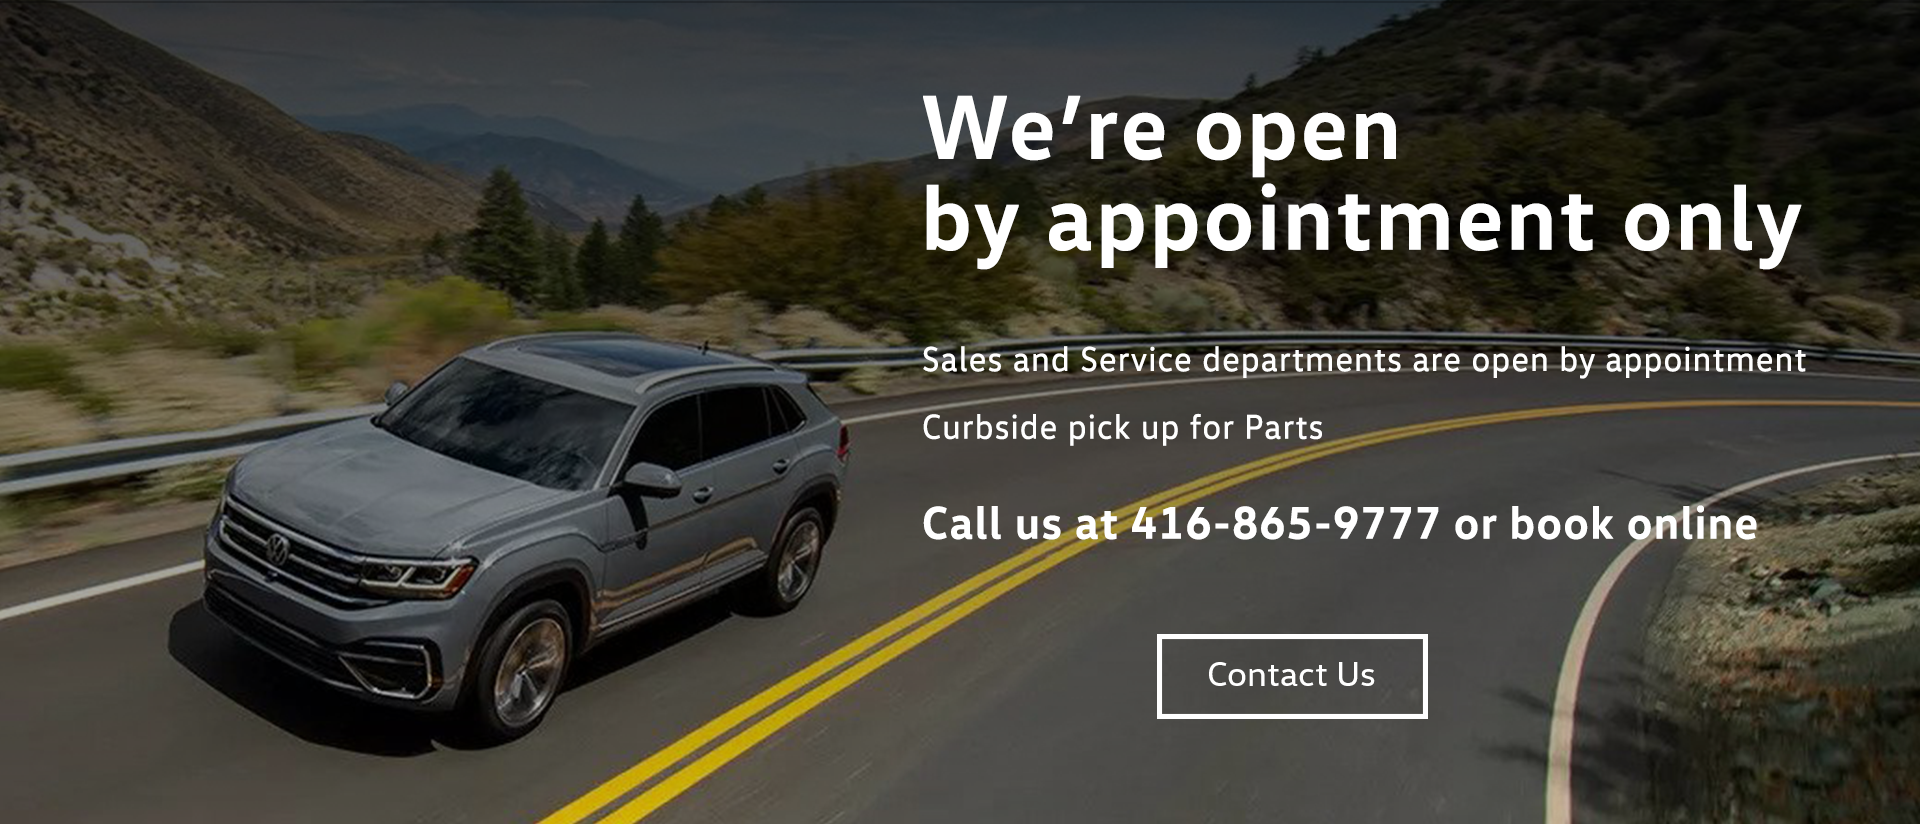 Vw Dt We Are Open Banner